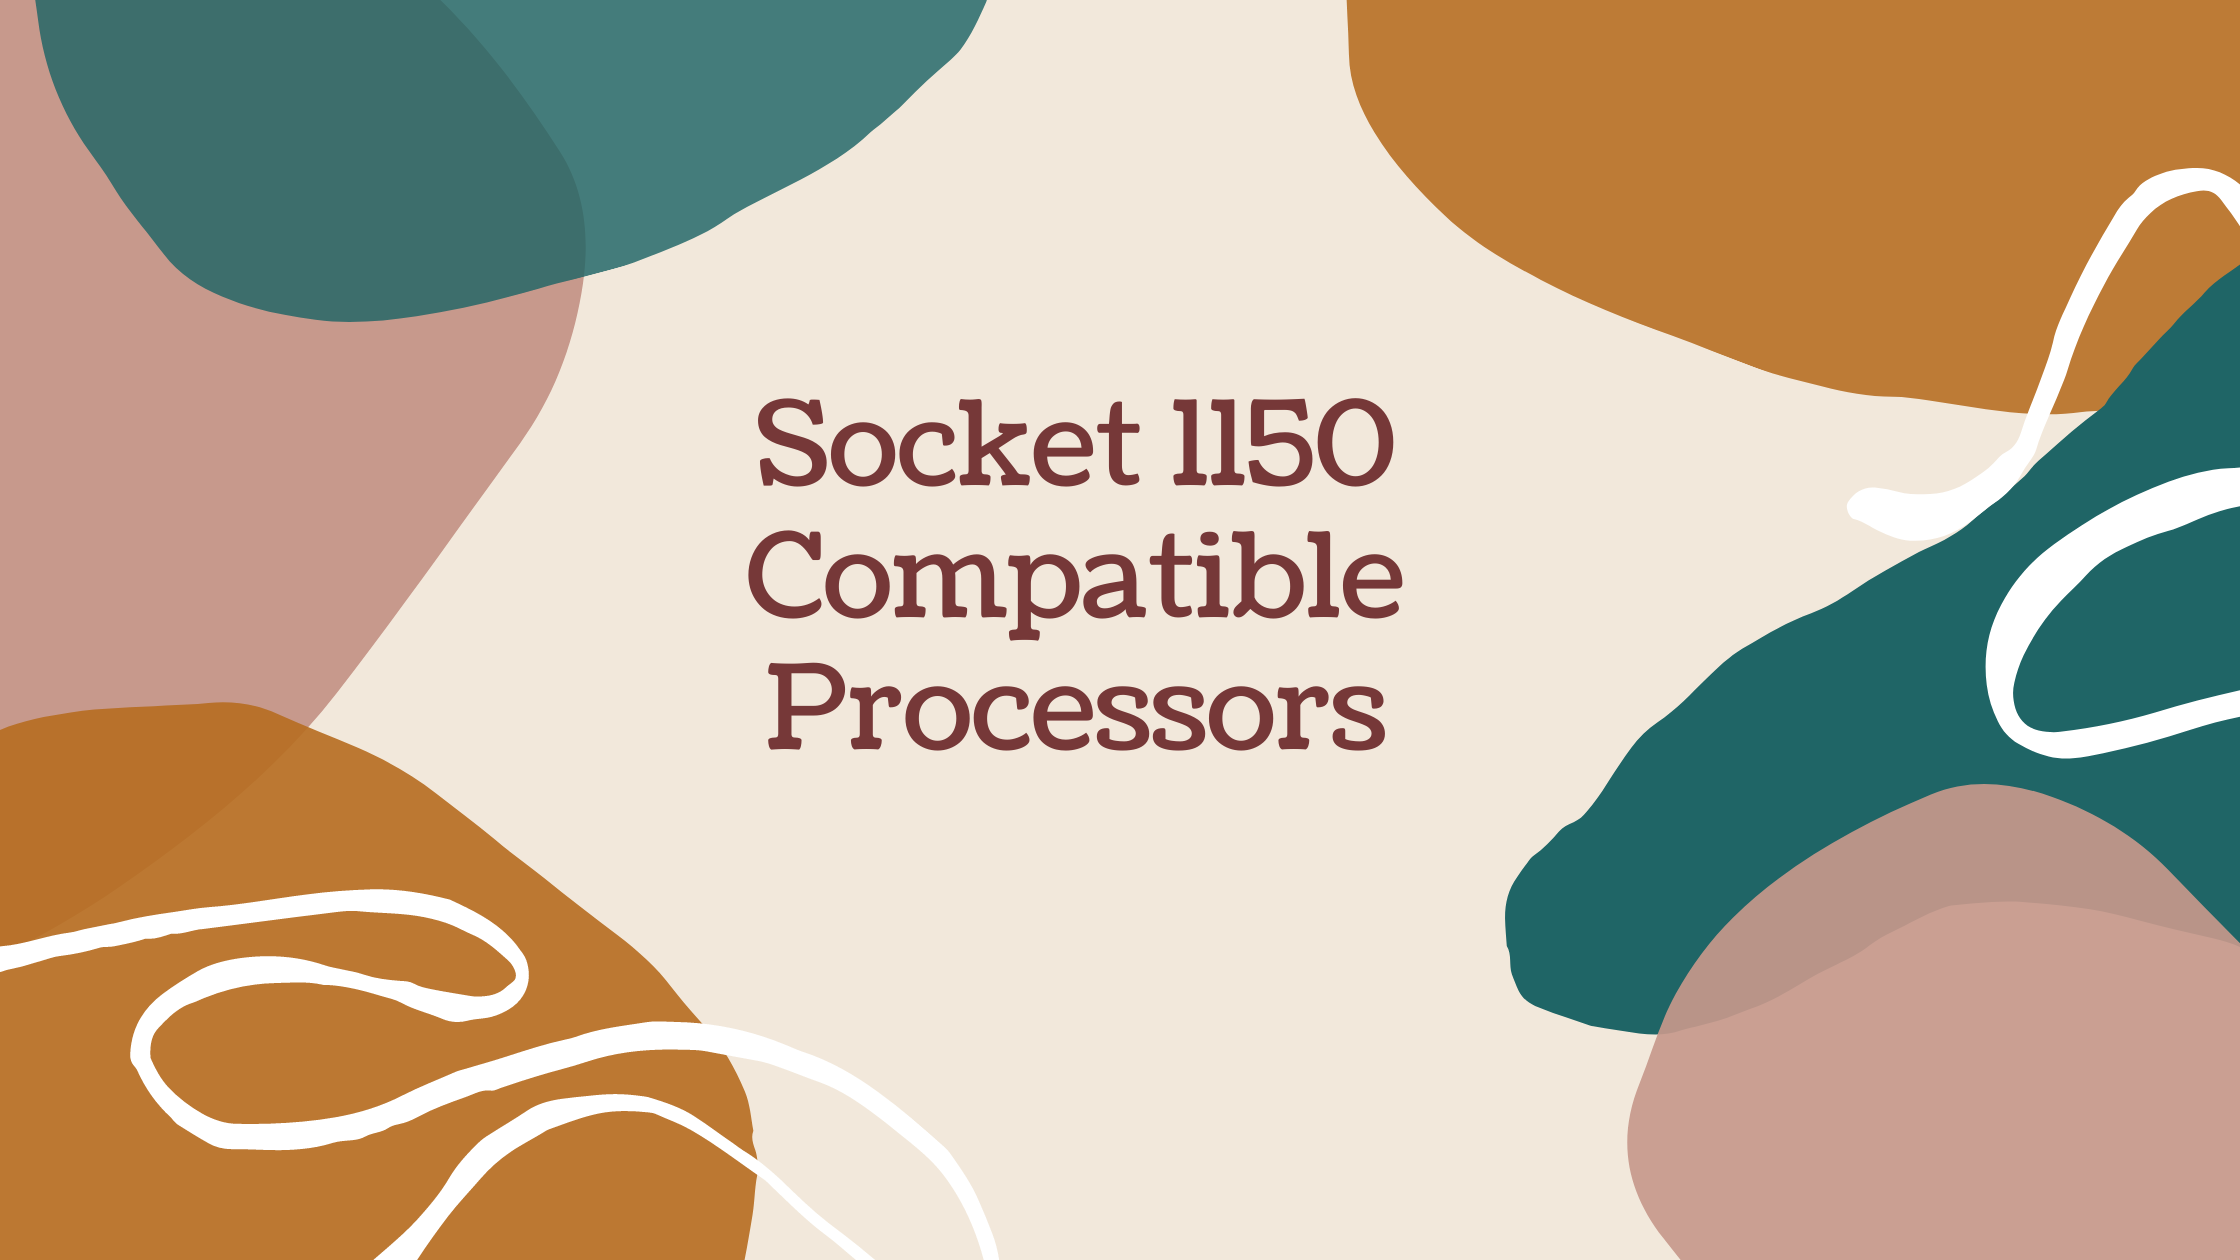 Socket 1150 Compatible Processors